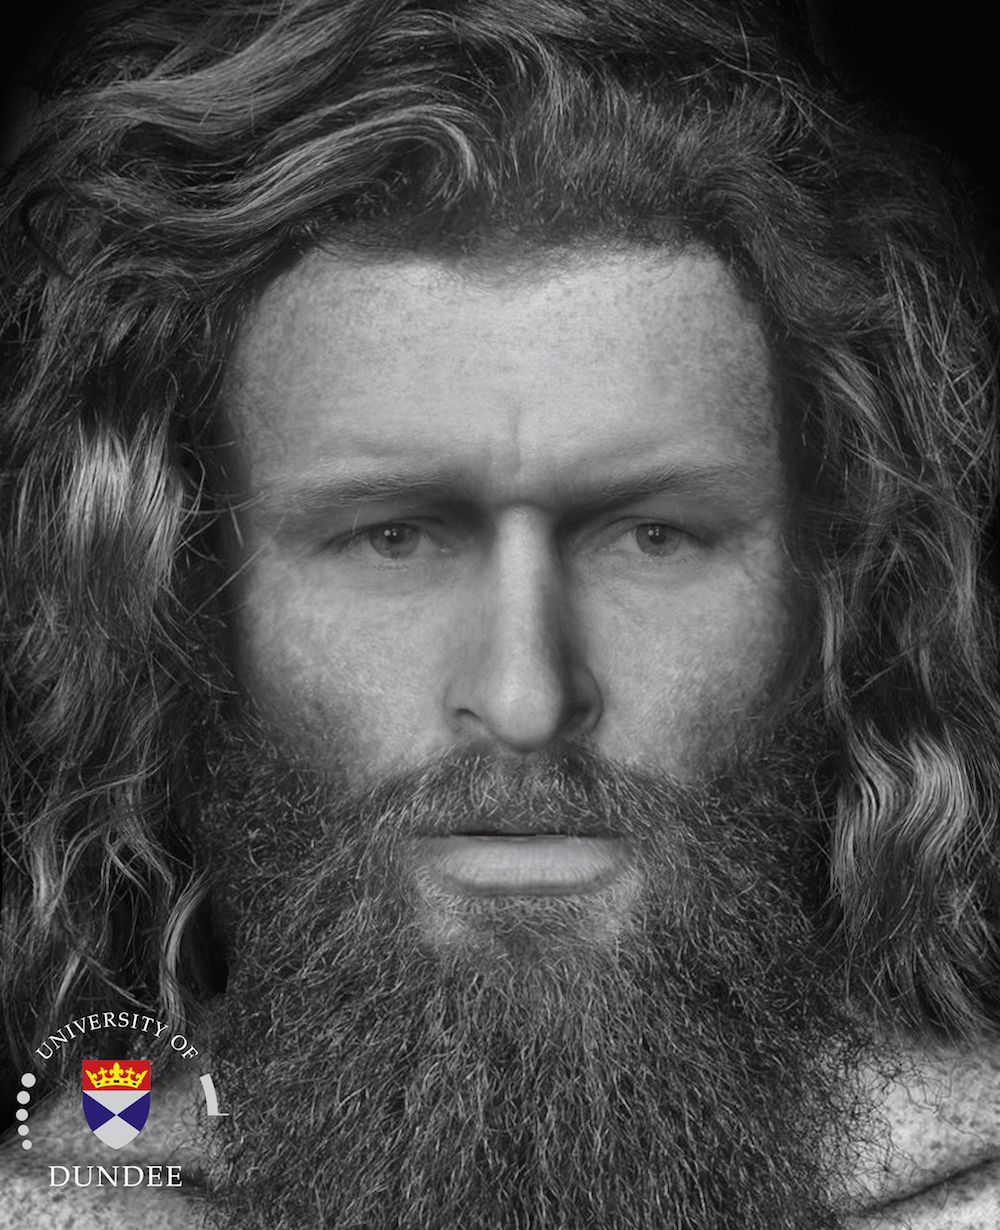 This May Be the Face of a Pictish Chieftain Who Was Brutally Murdered 1,400 Years Ago